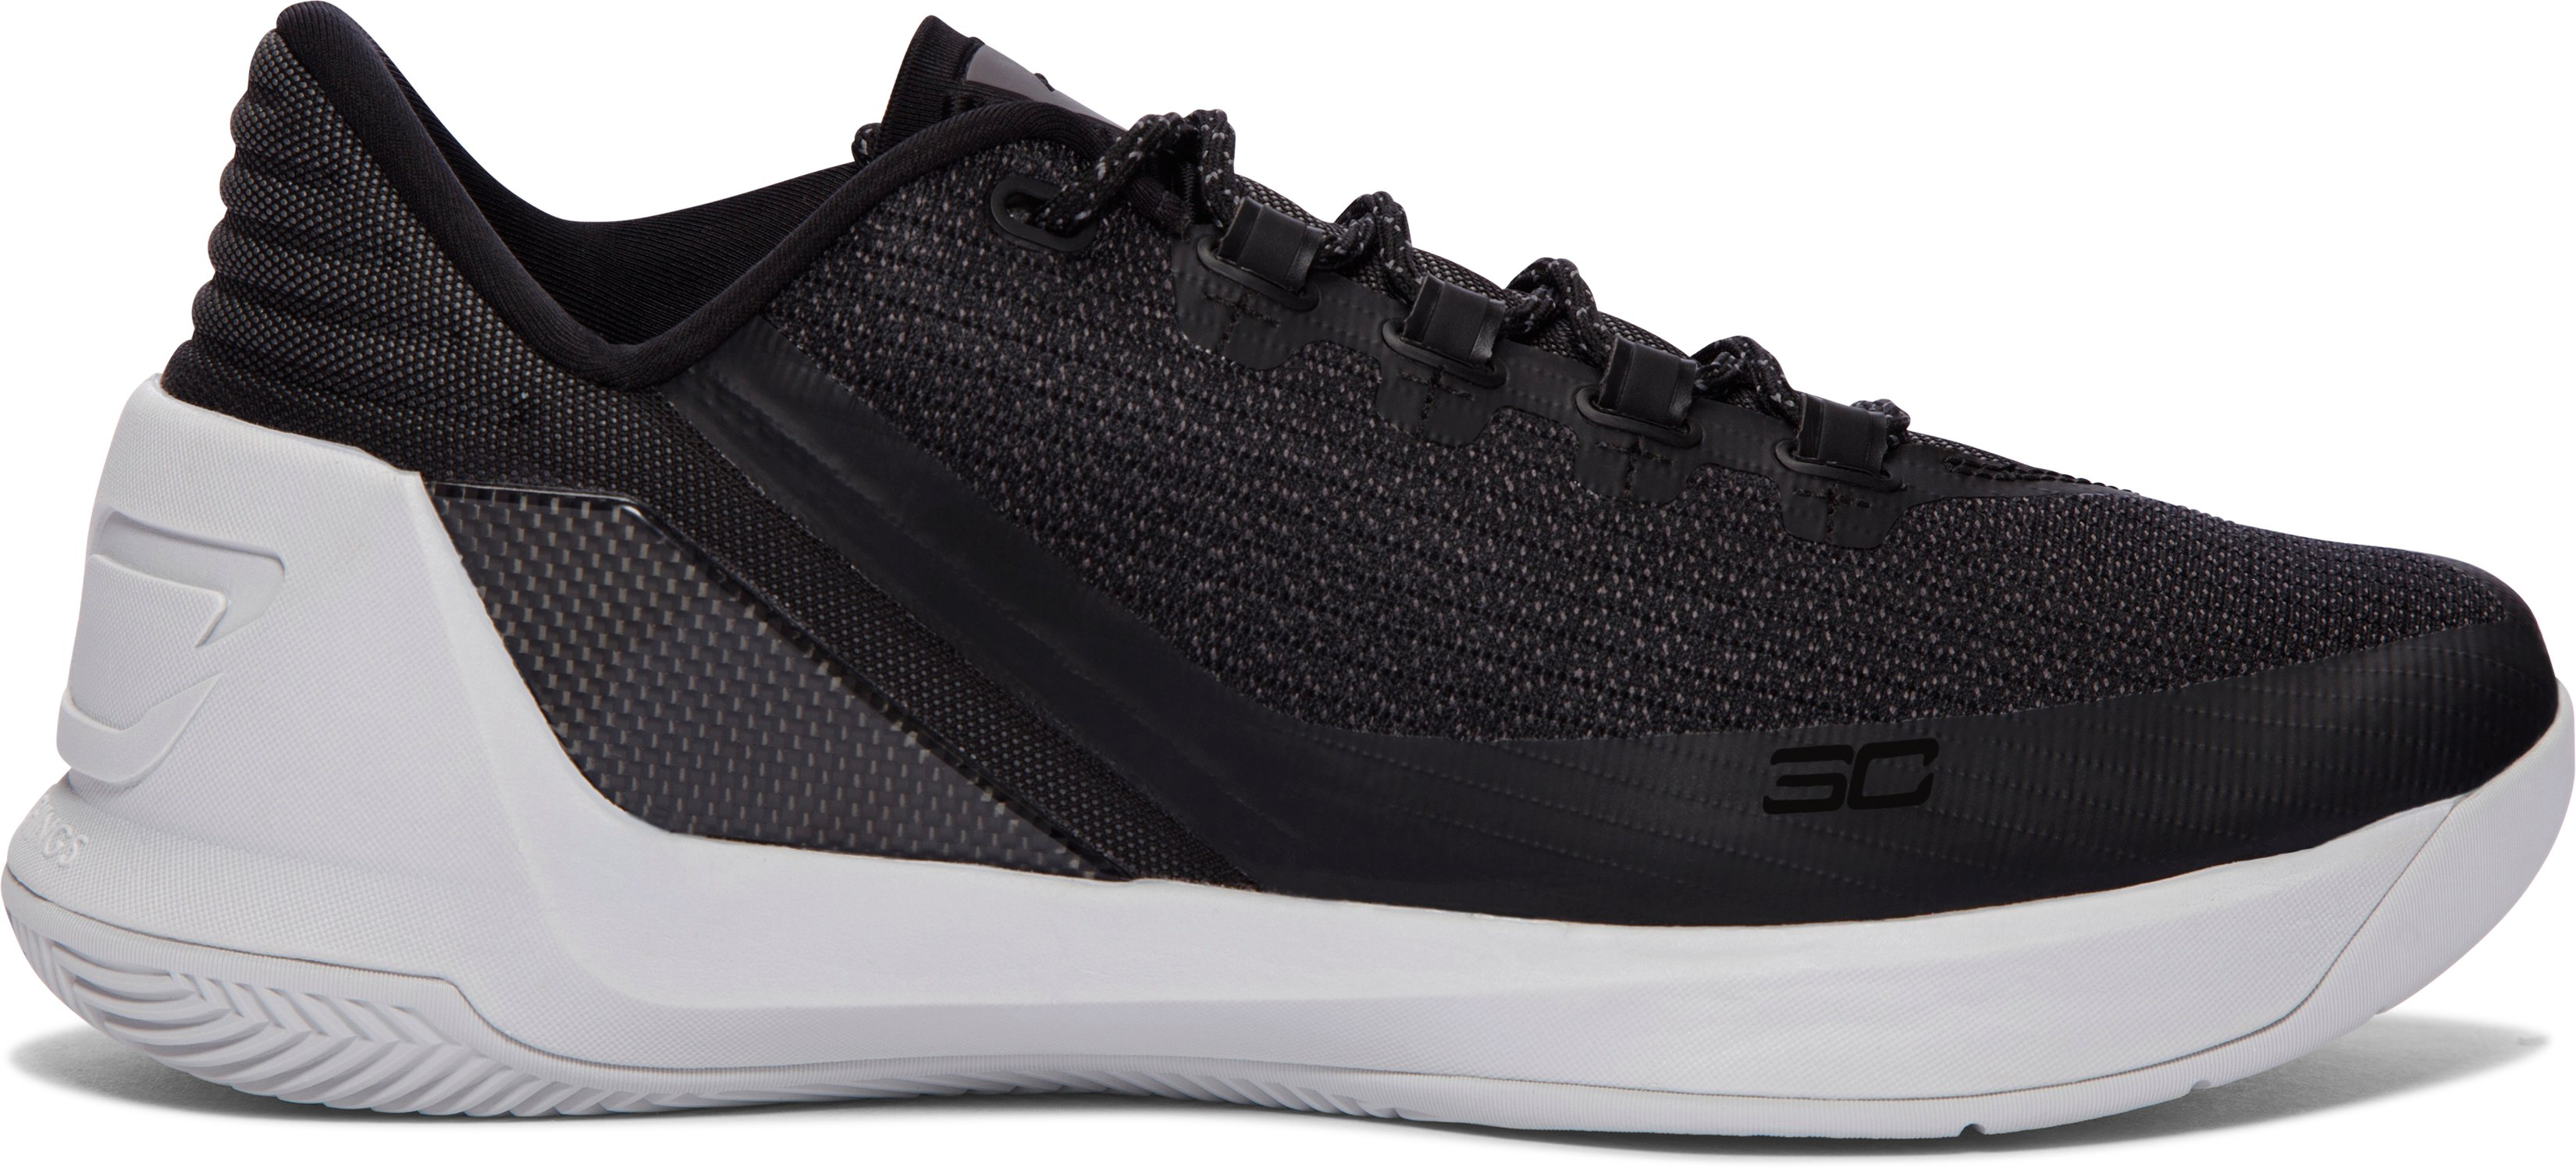 Men's UA Curry 3 Low Basketball Shoes, Black